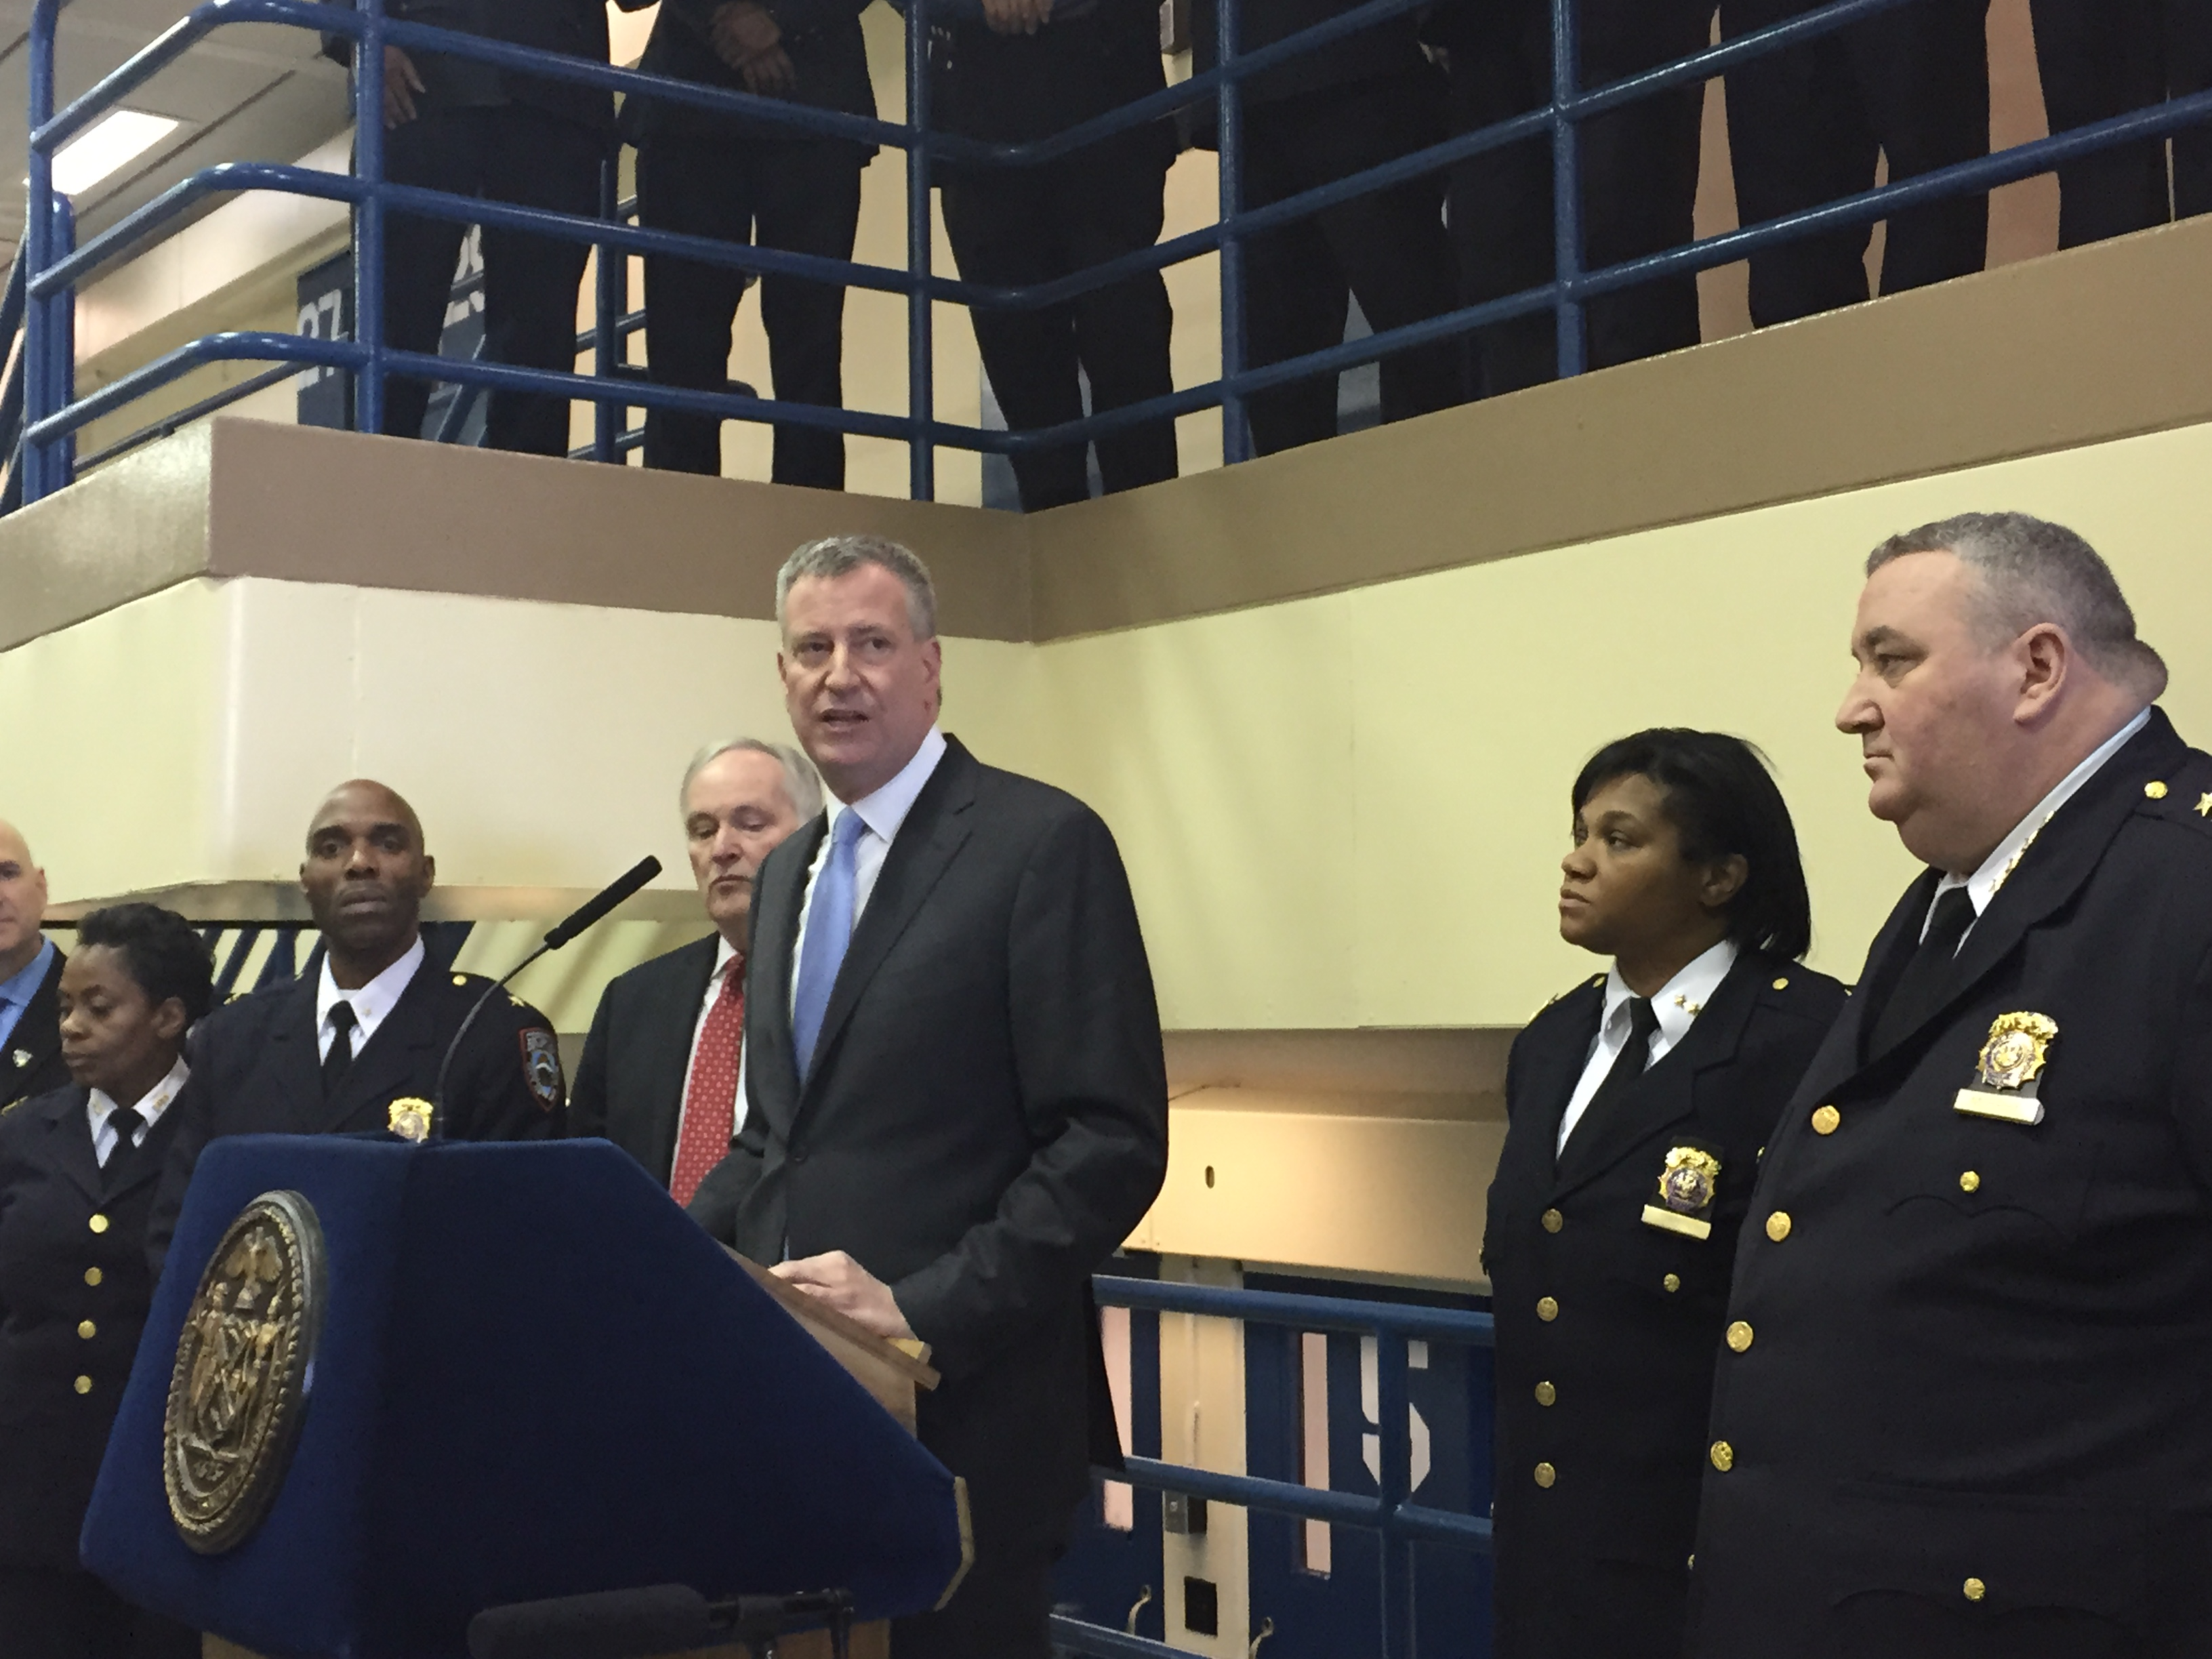 Mayor Bill de Blasio held a press conference today at the Otis Bantum Correctional Center on Rikers Island today. (Photo: Jillian Jorgensen/New York Observer)